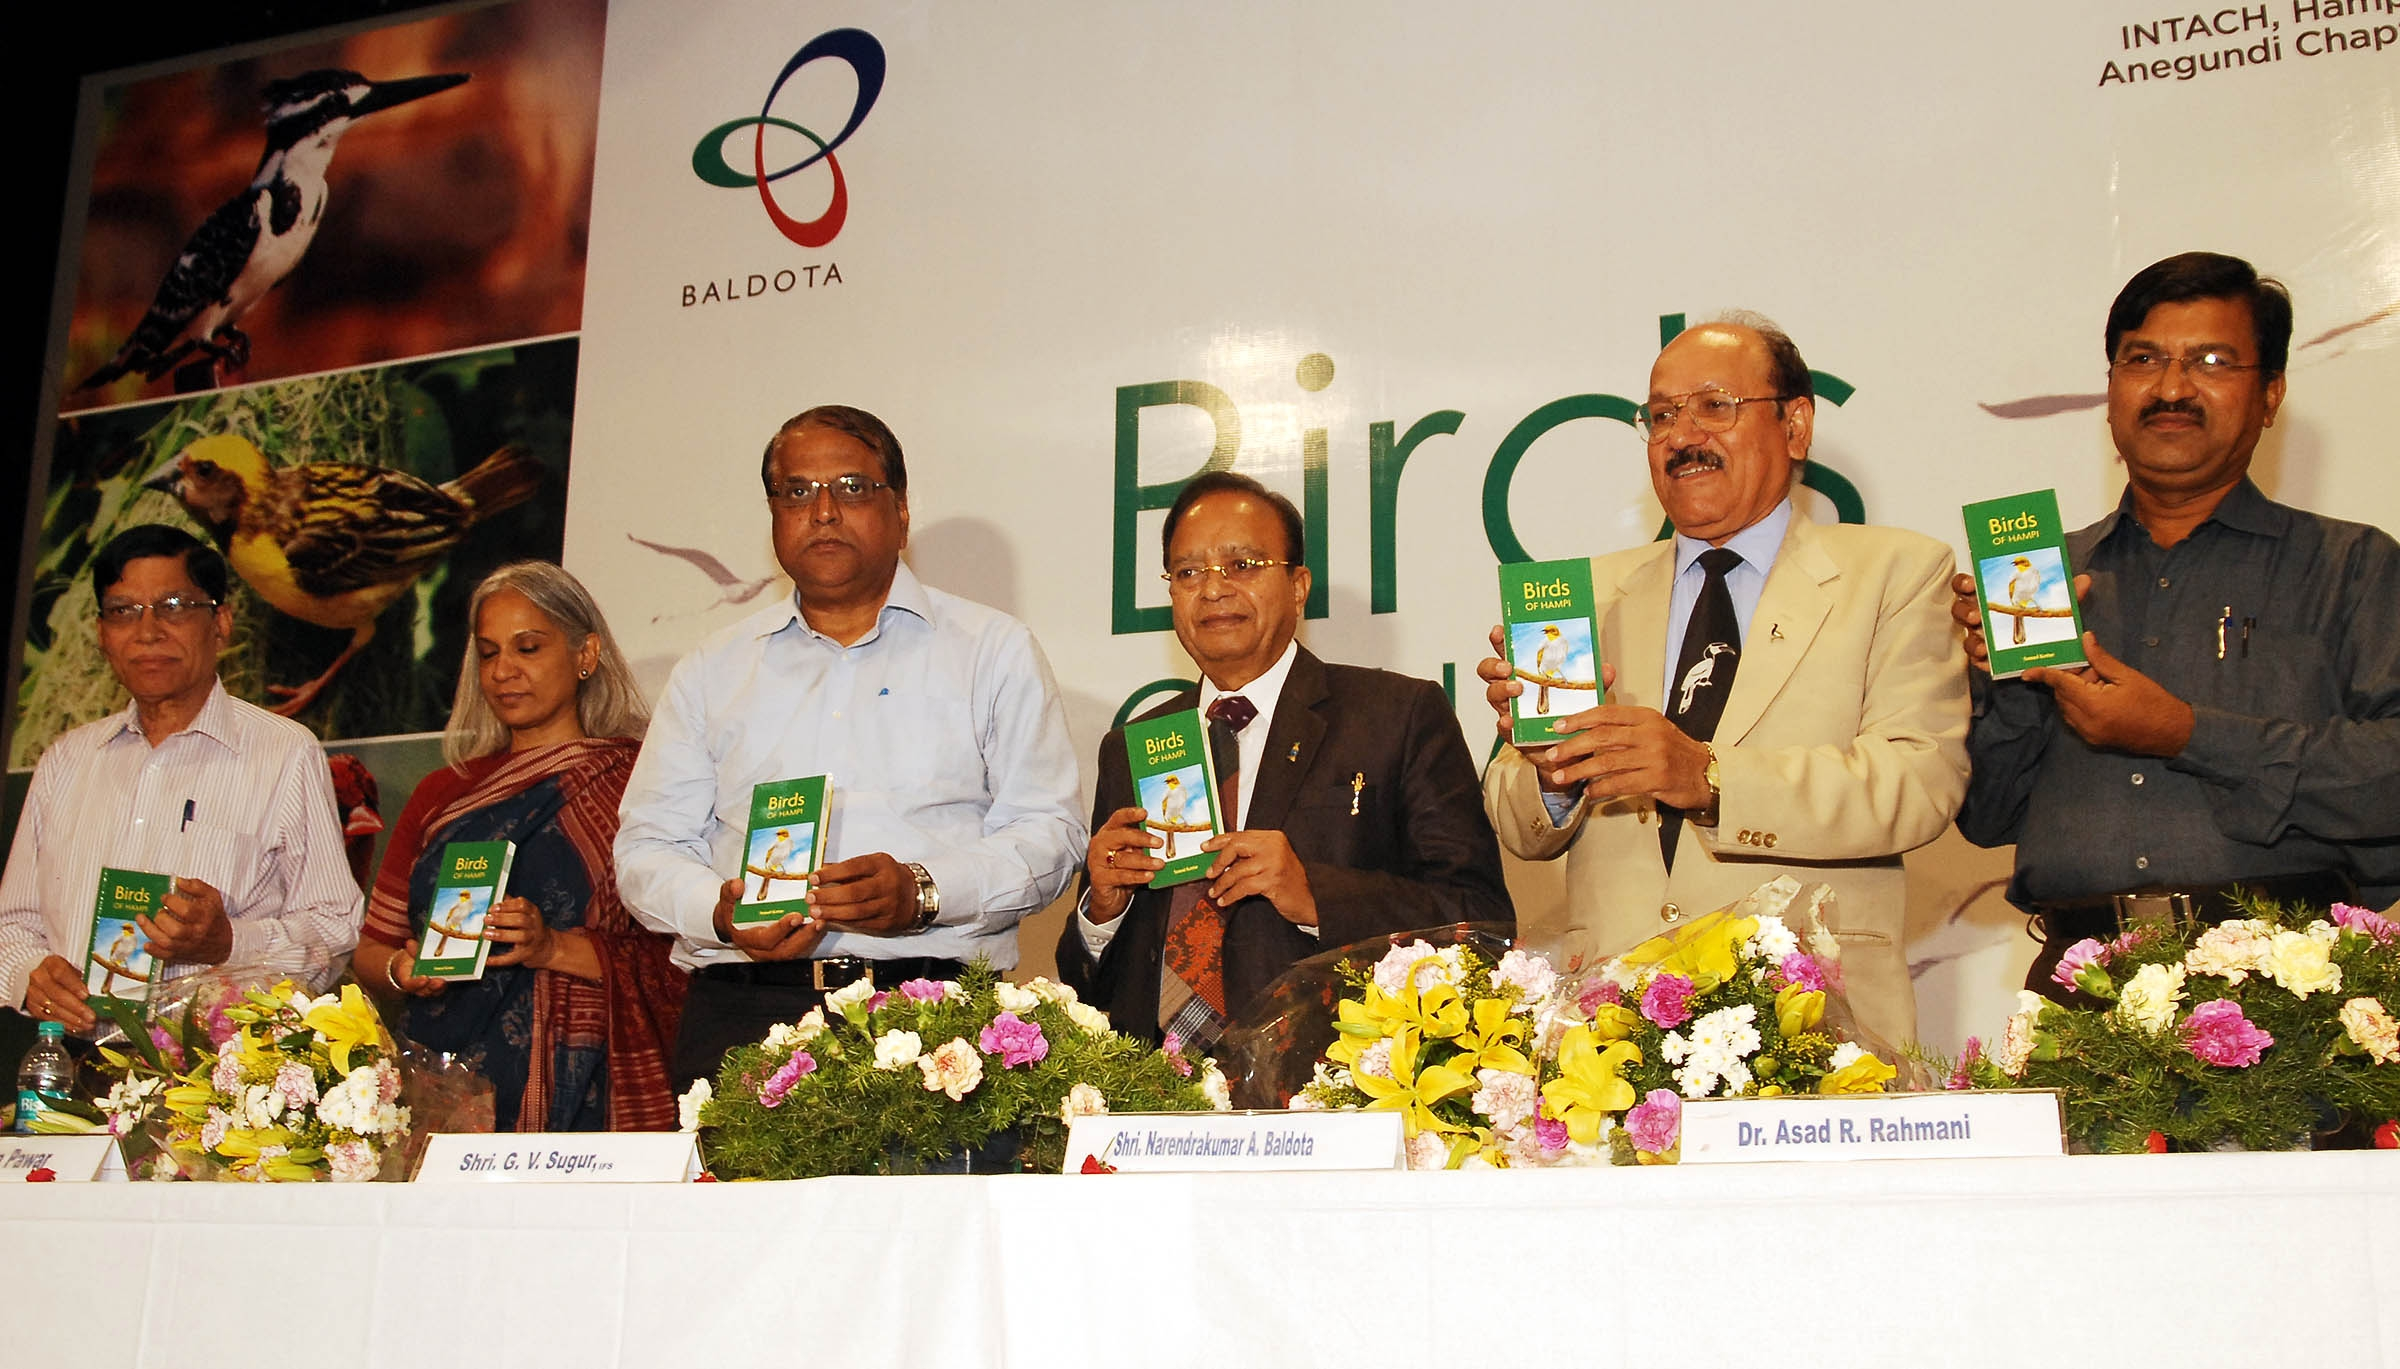 Principal Chief Conservative of Forest, G V Sugur releases a book `Birds of Hampi' authored by Samad Kottur (right) at a function in Bangalore on Saturday, 5th April 2014. Also seen are CMD, MSPL, Narendrakumar A Baldota, Director, Bombay Natural History Society, Dr Asad R Rahmani, Convener-INTACH, Hampi-Anegundi Chapter, Shama Pawar and others.